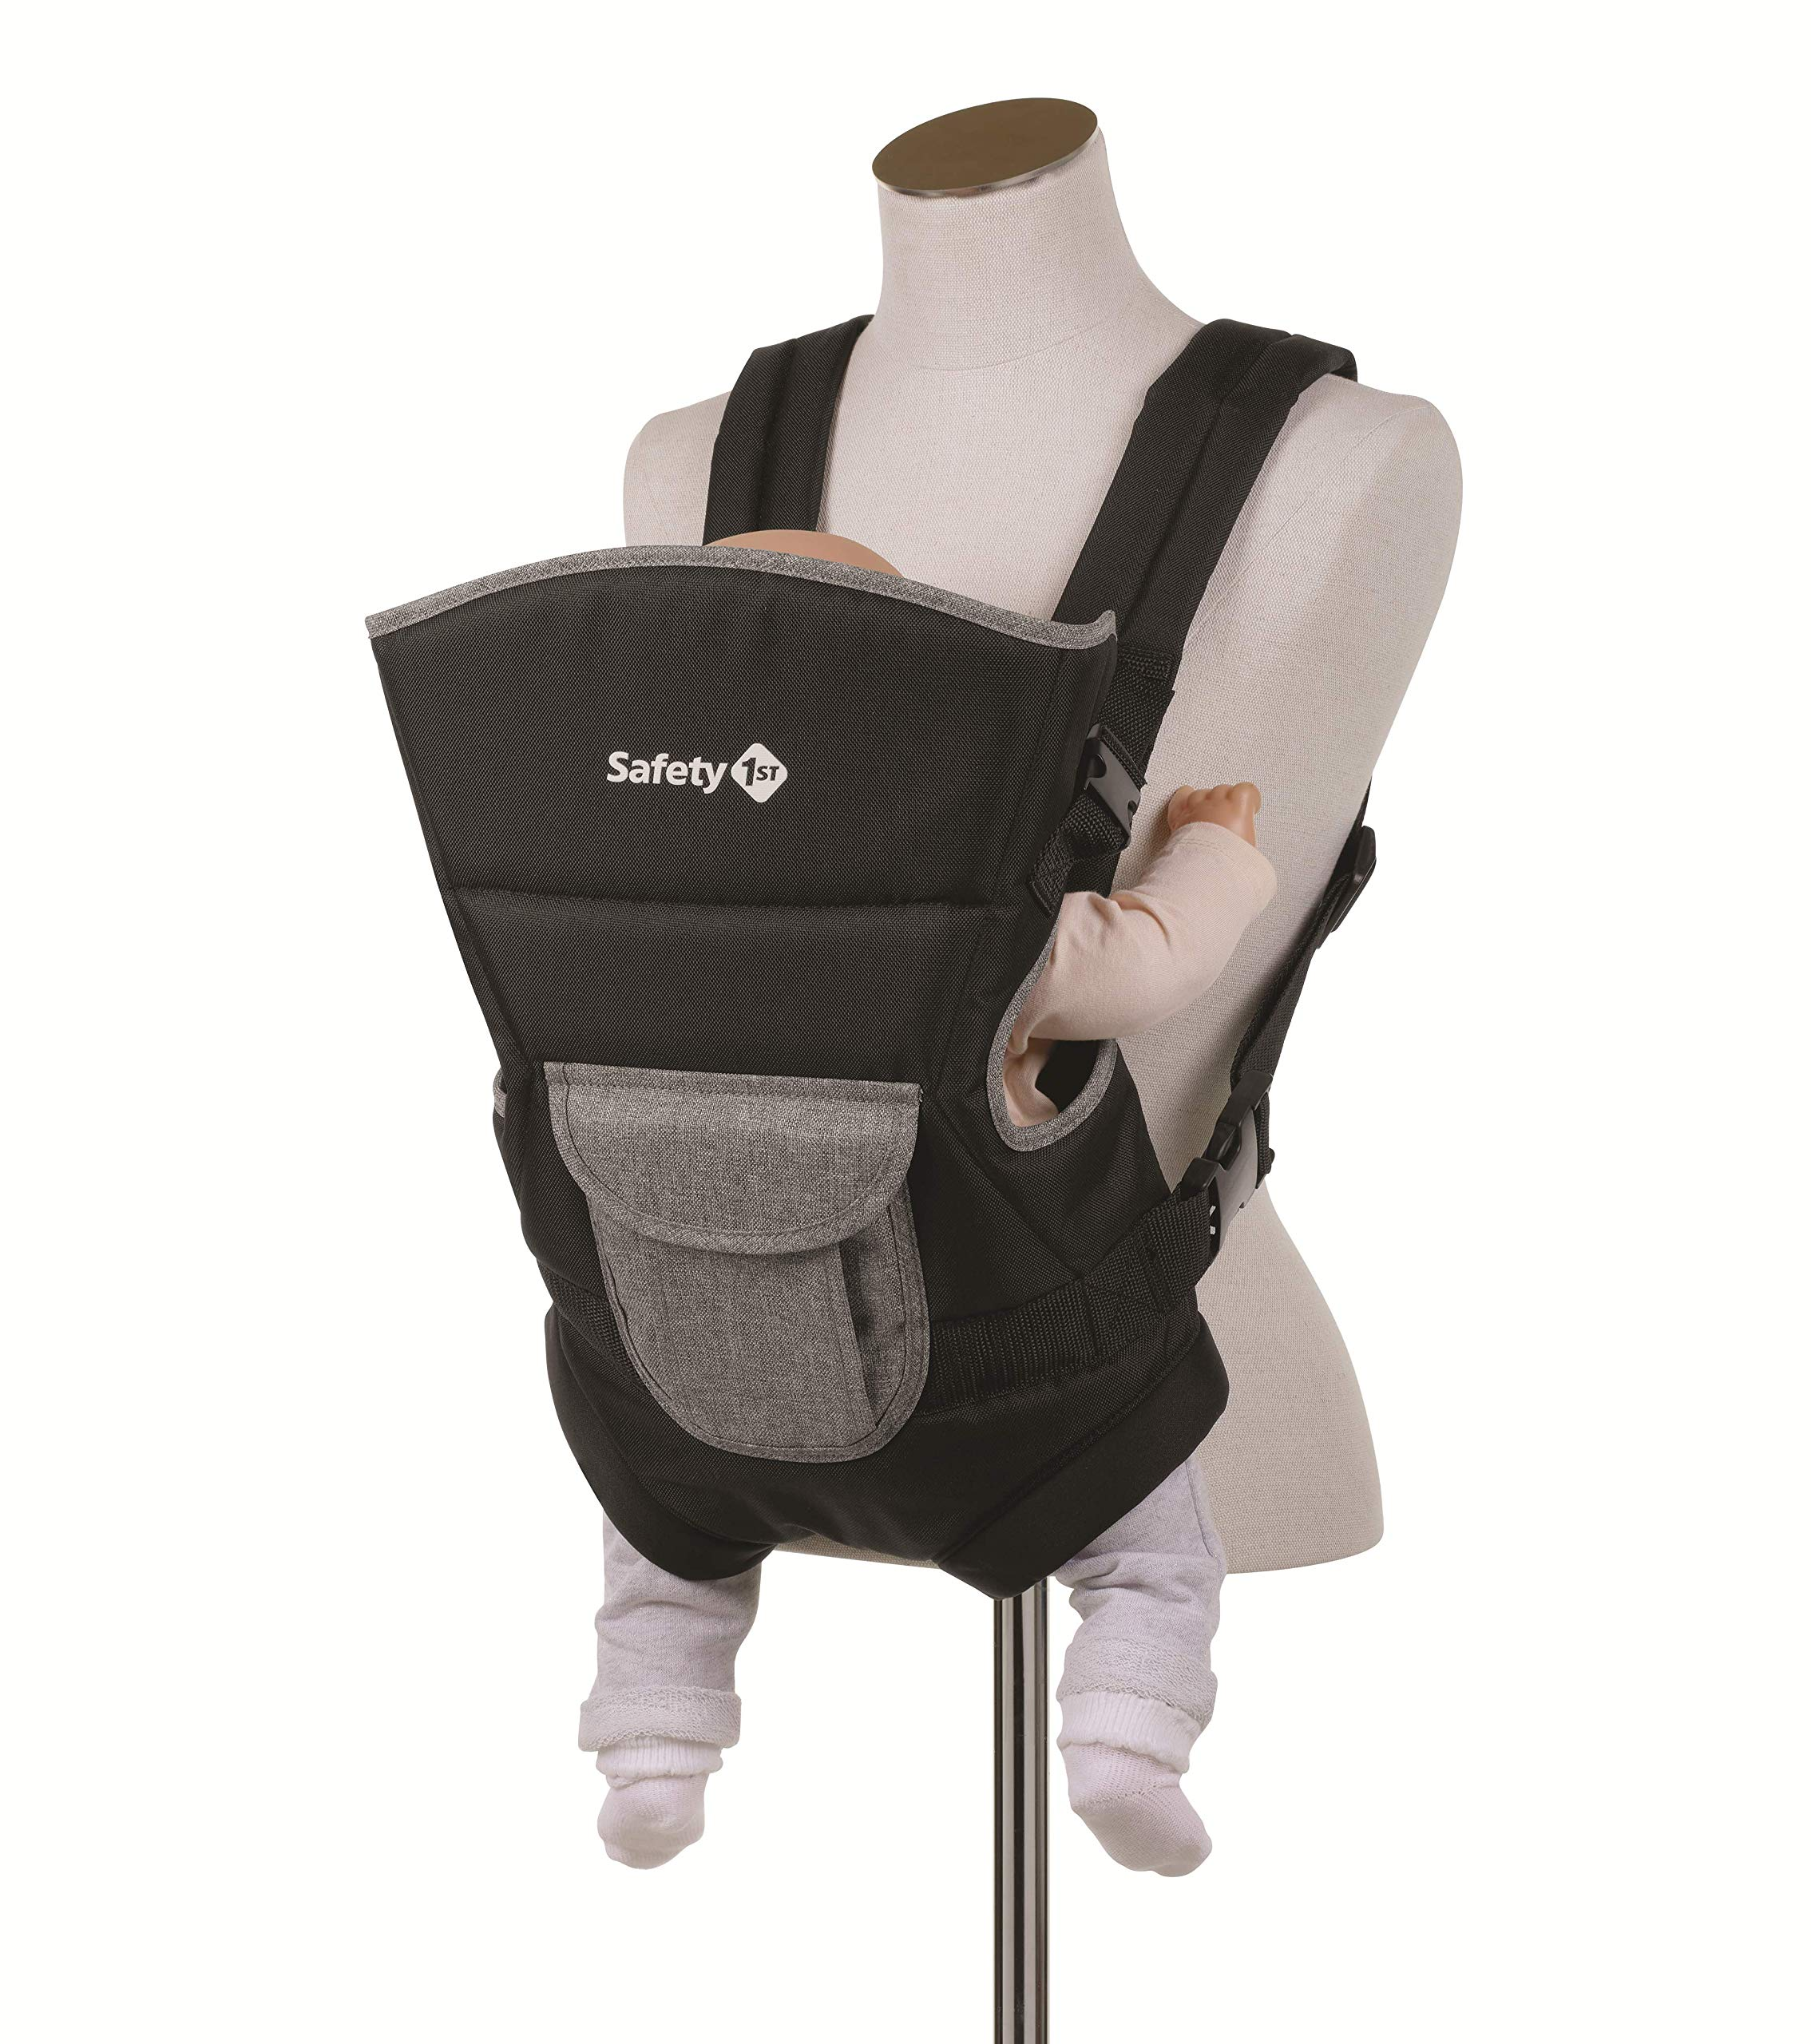 Safety 1st Youmi Baby Carrier, Black Chic Safety 1st 2 positions: parent facing and forward facing Comfortable and safe seat thanks to padding and reinforced back and head piece Safe and easy to install the baby thanks to the zippered opening 1